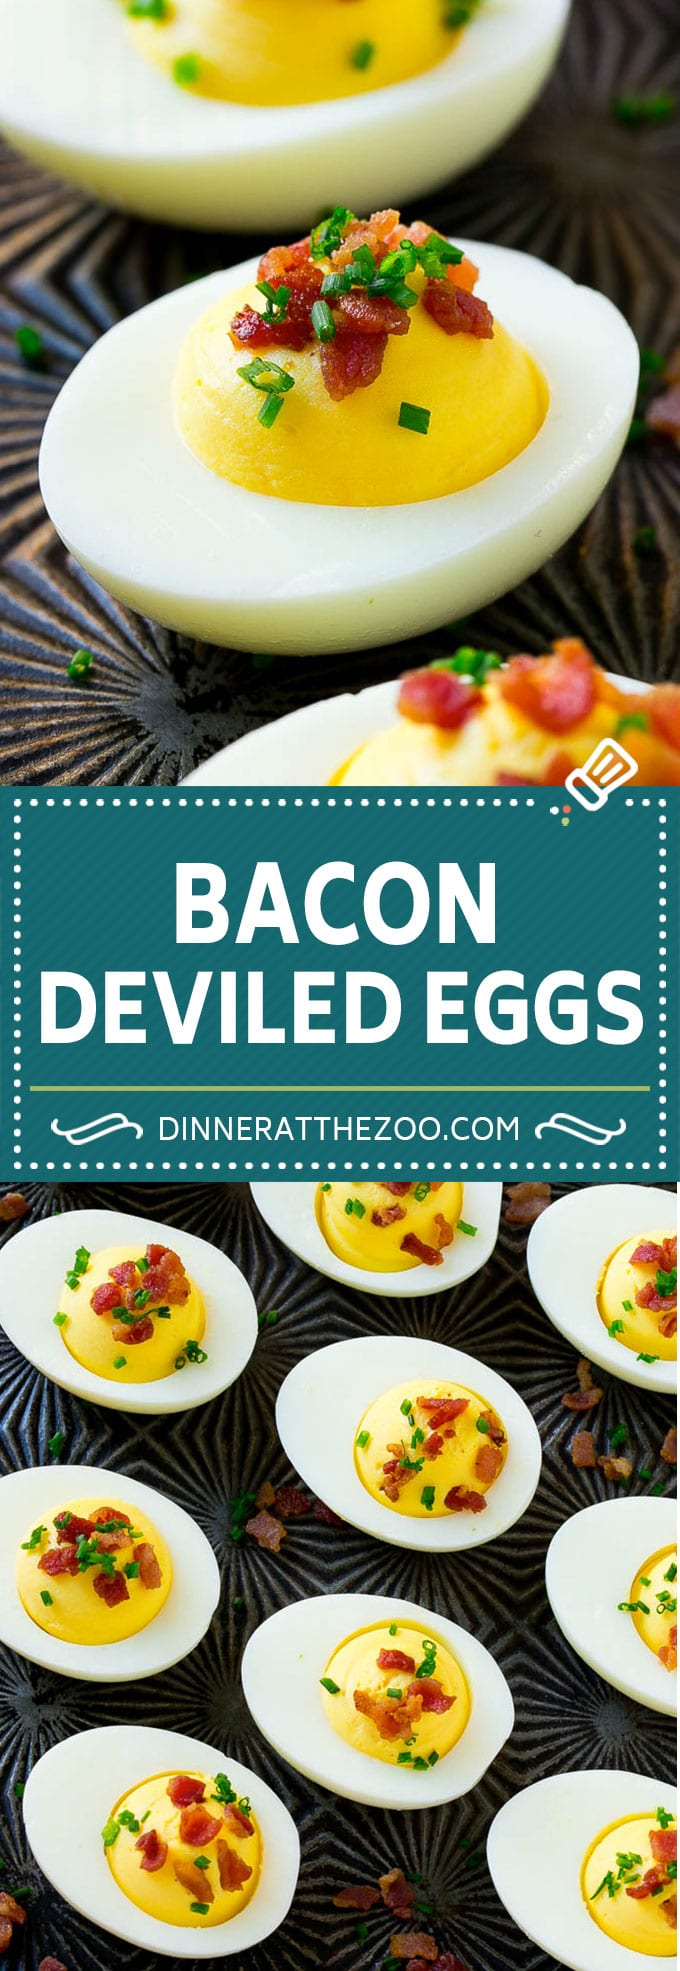 Bacon Deviled Eggs Recipe | Deviled Eggs with Bacon | Easy Deviled Eggs | Deviled Eggs with Bacon Bits